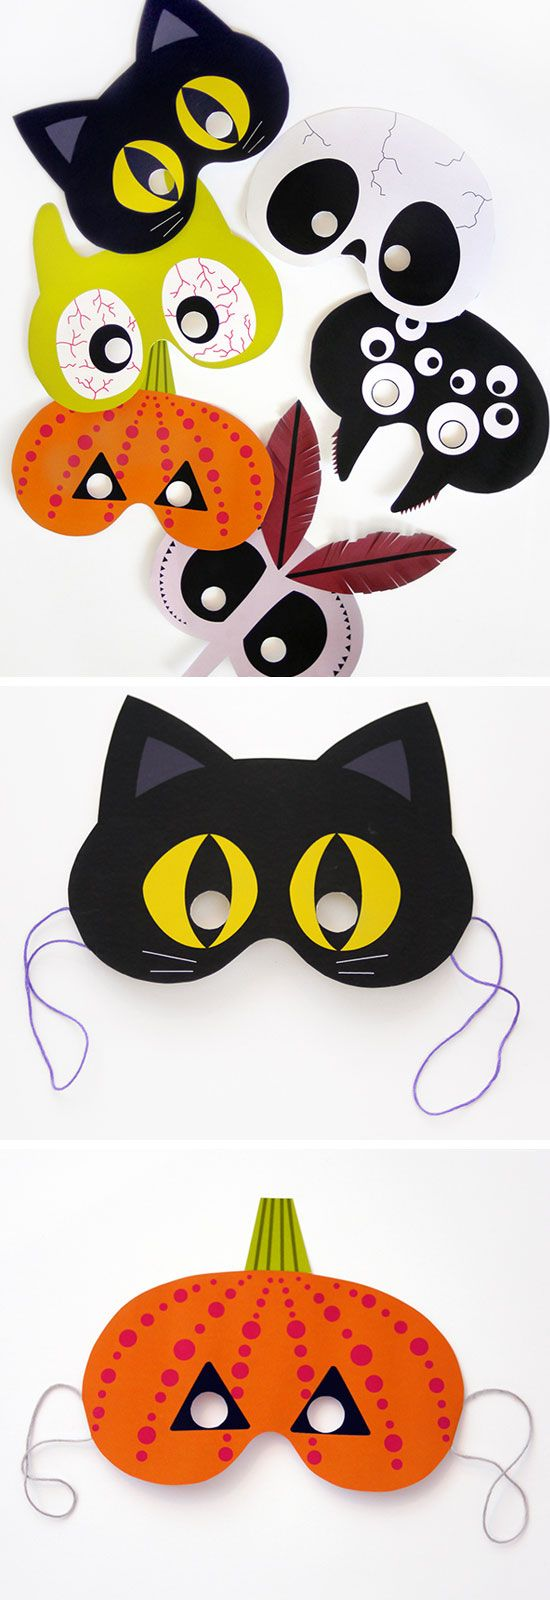 Printable Halloween Masks | Click Pic for 30 DIY Halloween Crafts for Kids to Make | DIY Halloween Craft Ideas for Kids